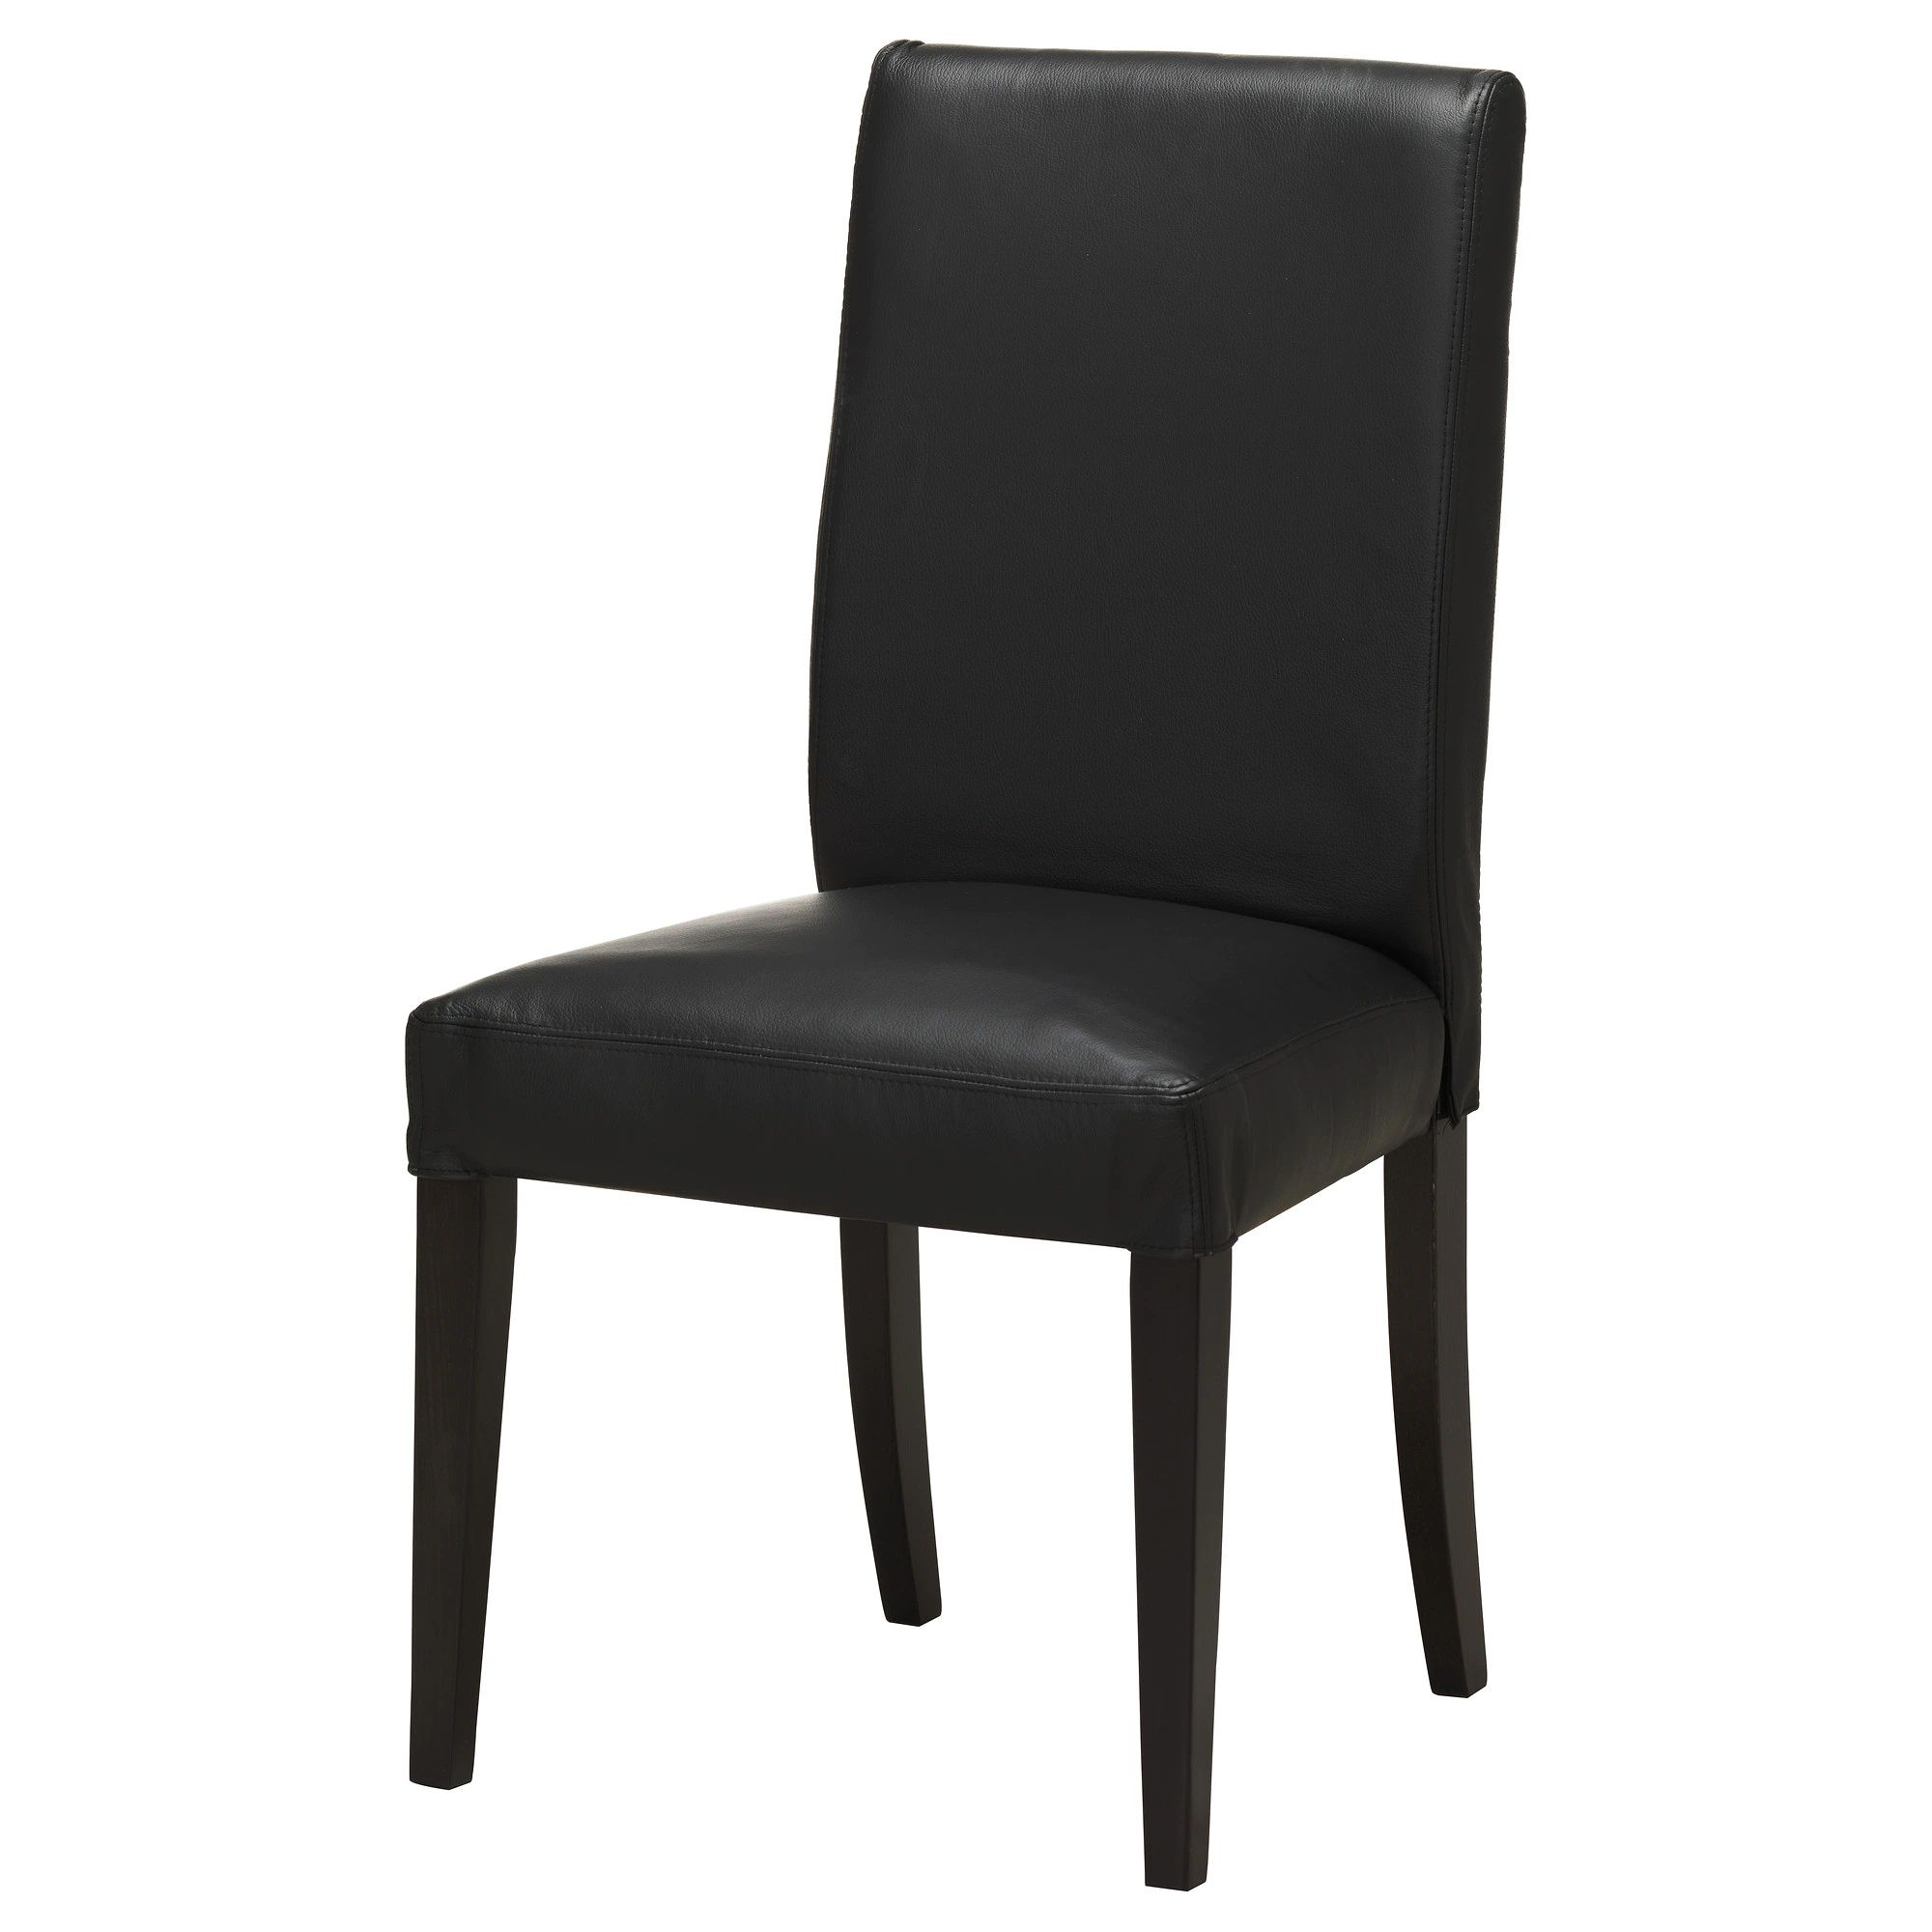 Henriksdal chair brown black glose black tested for 243 lb width